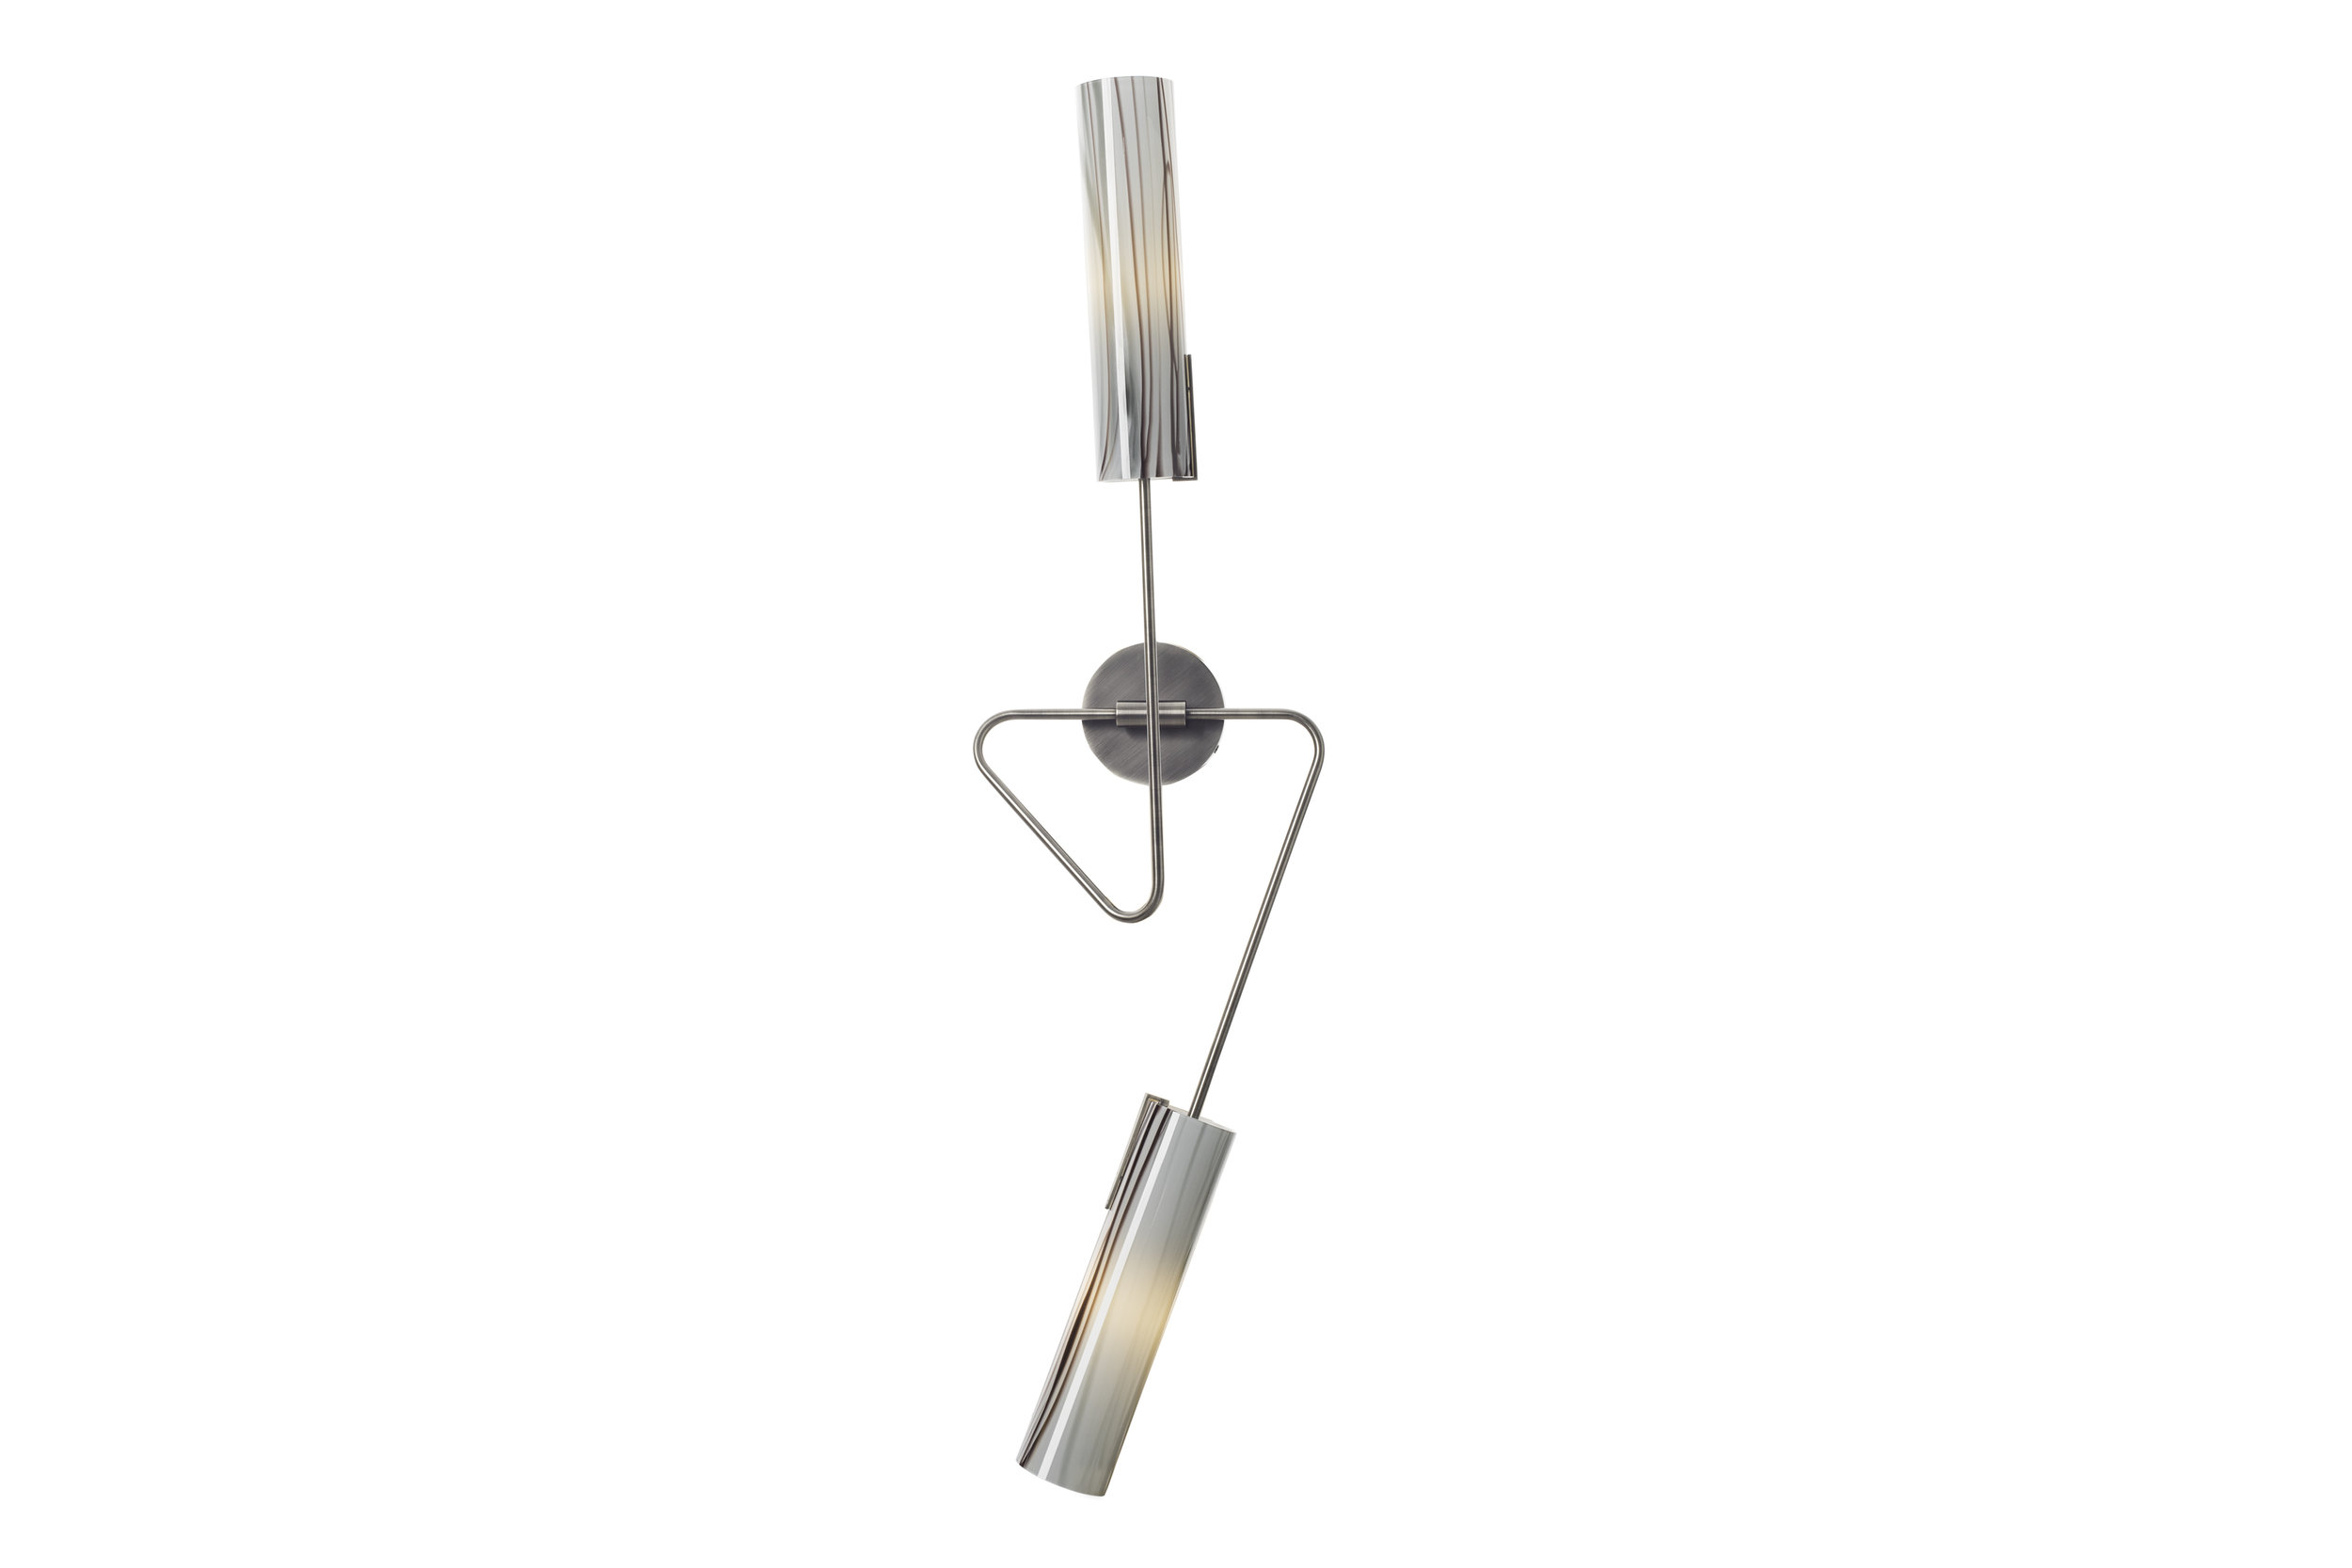 Avram_Rusu_Continuum_Sconce_Model_2_1.jpg